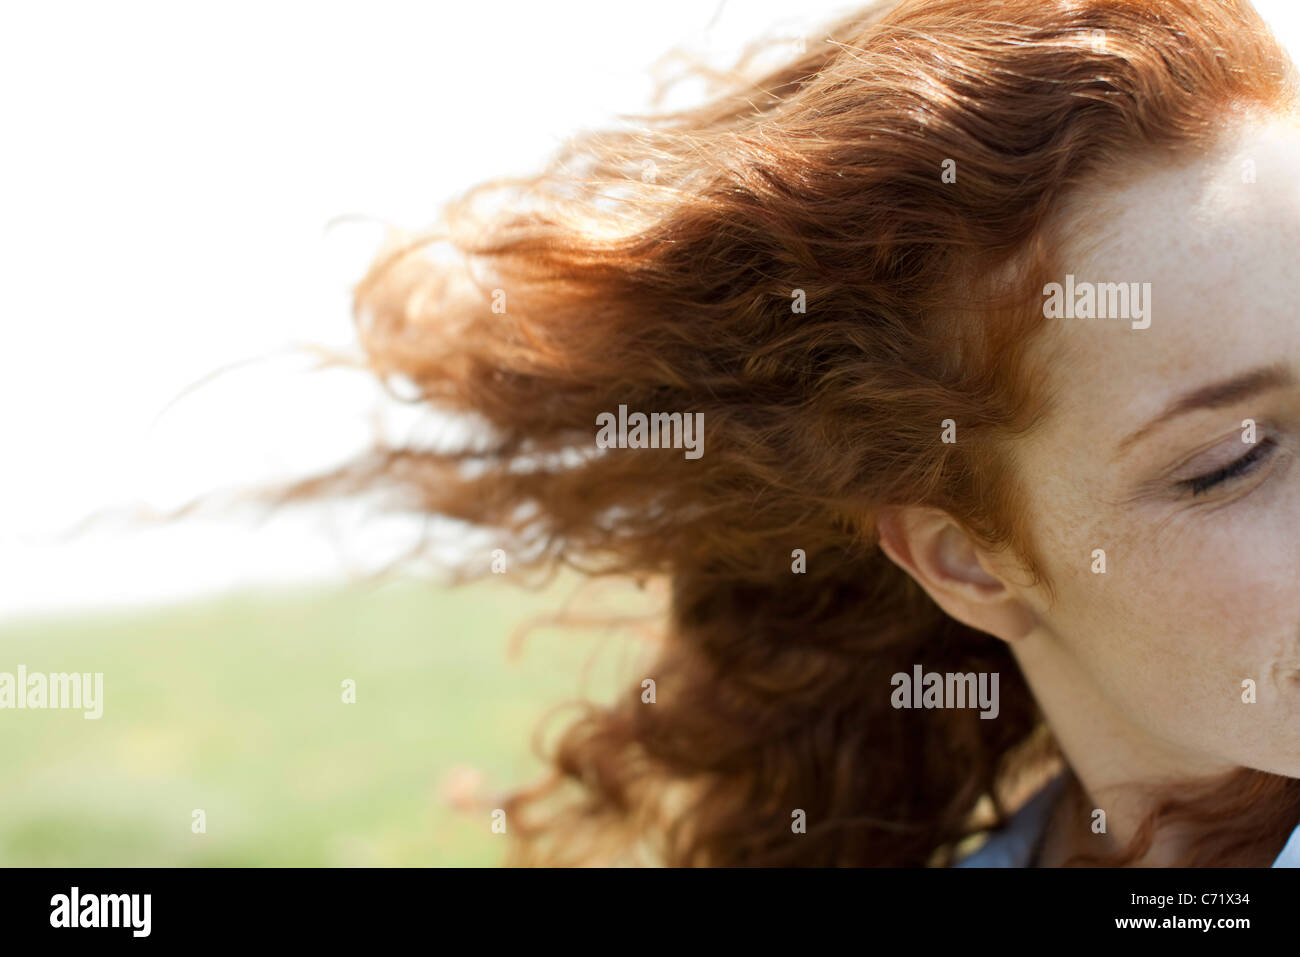 Redheaded woman with hair blowing in wind - Stock Image